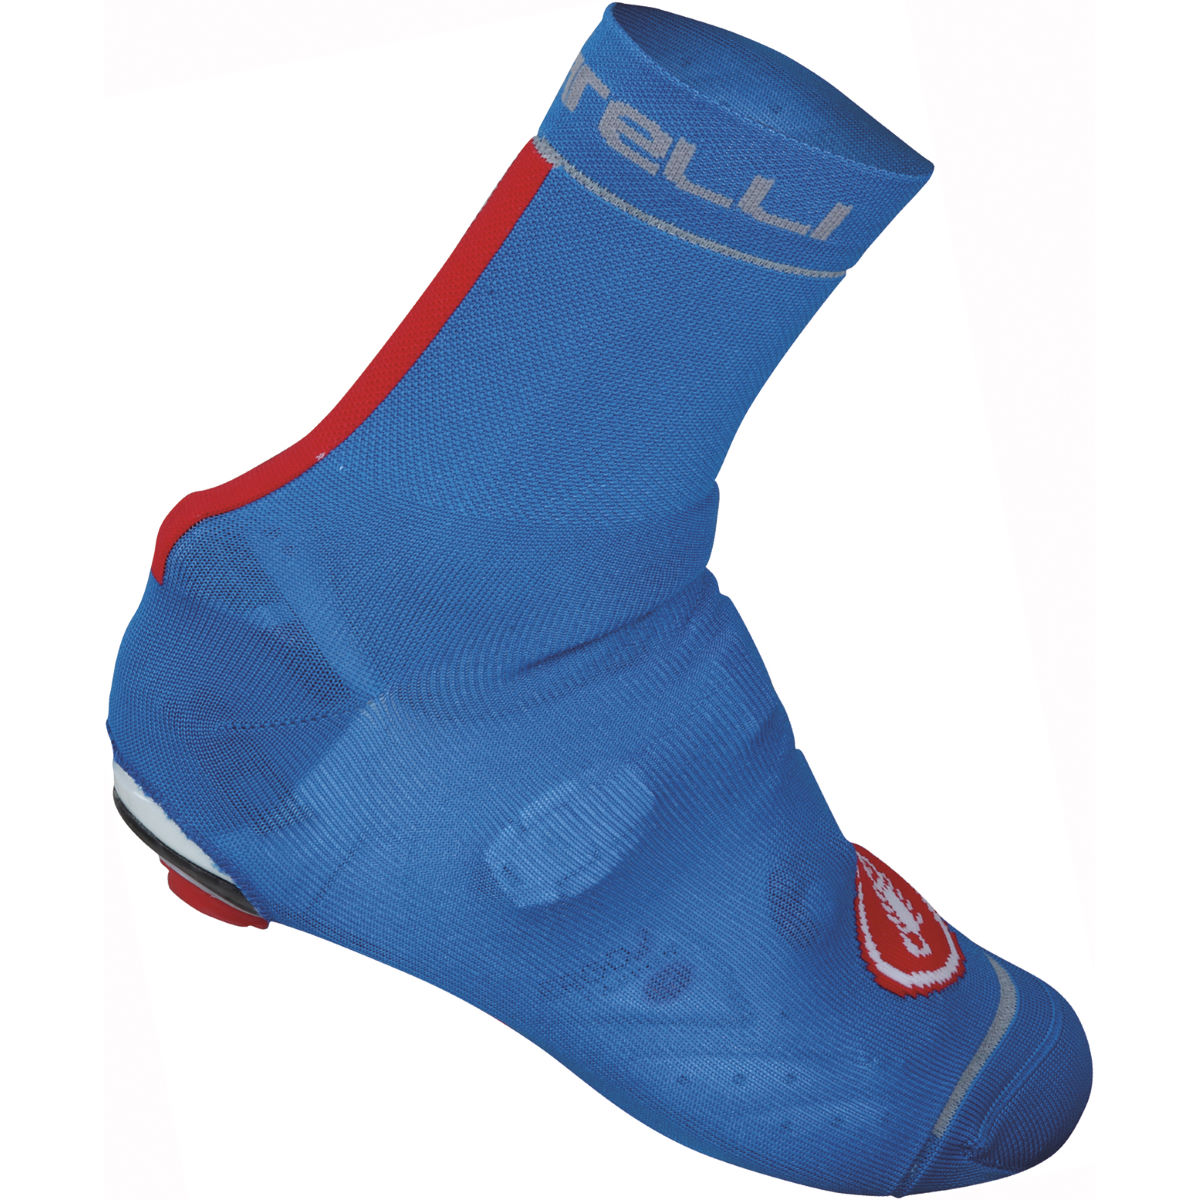 Couvre-chaussures Castelli Belgian 4 - S/M Blue/Red